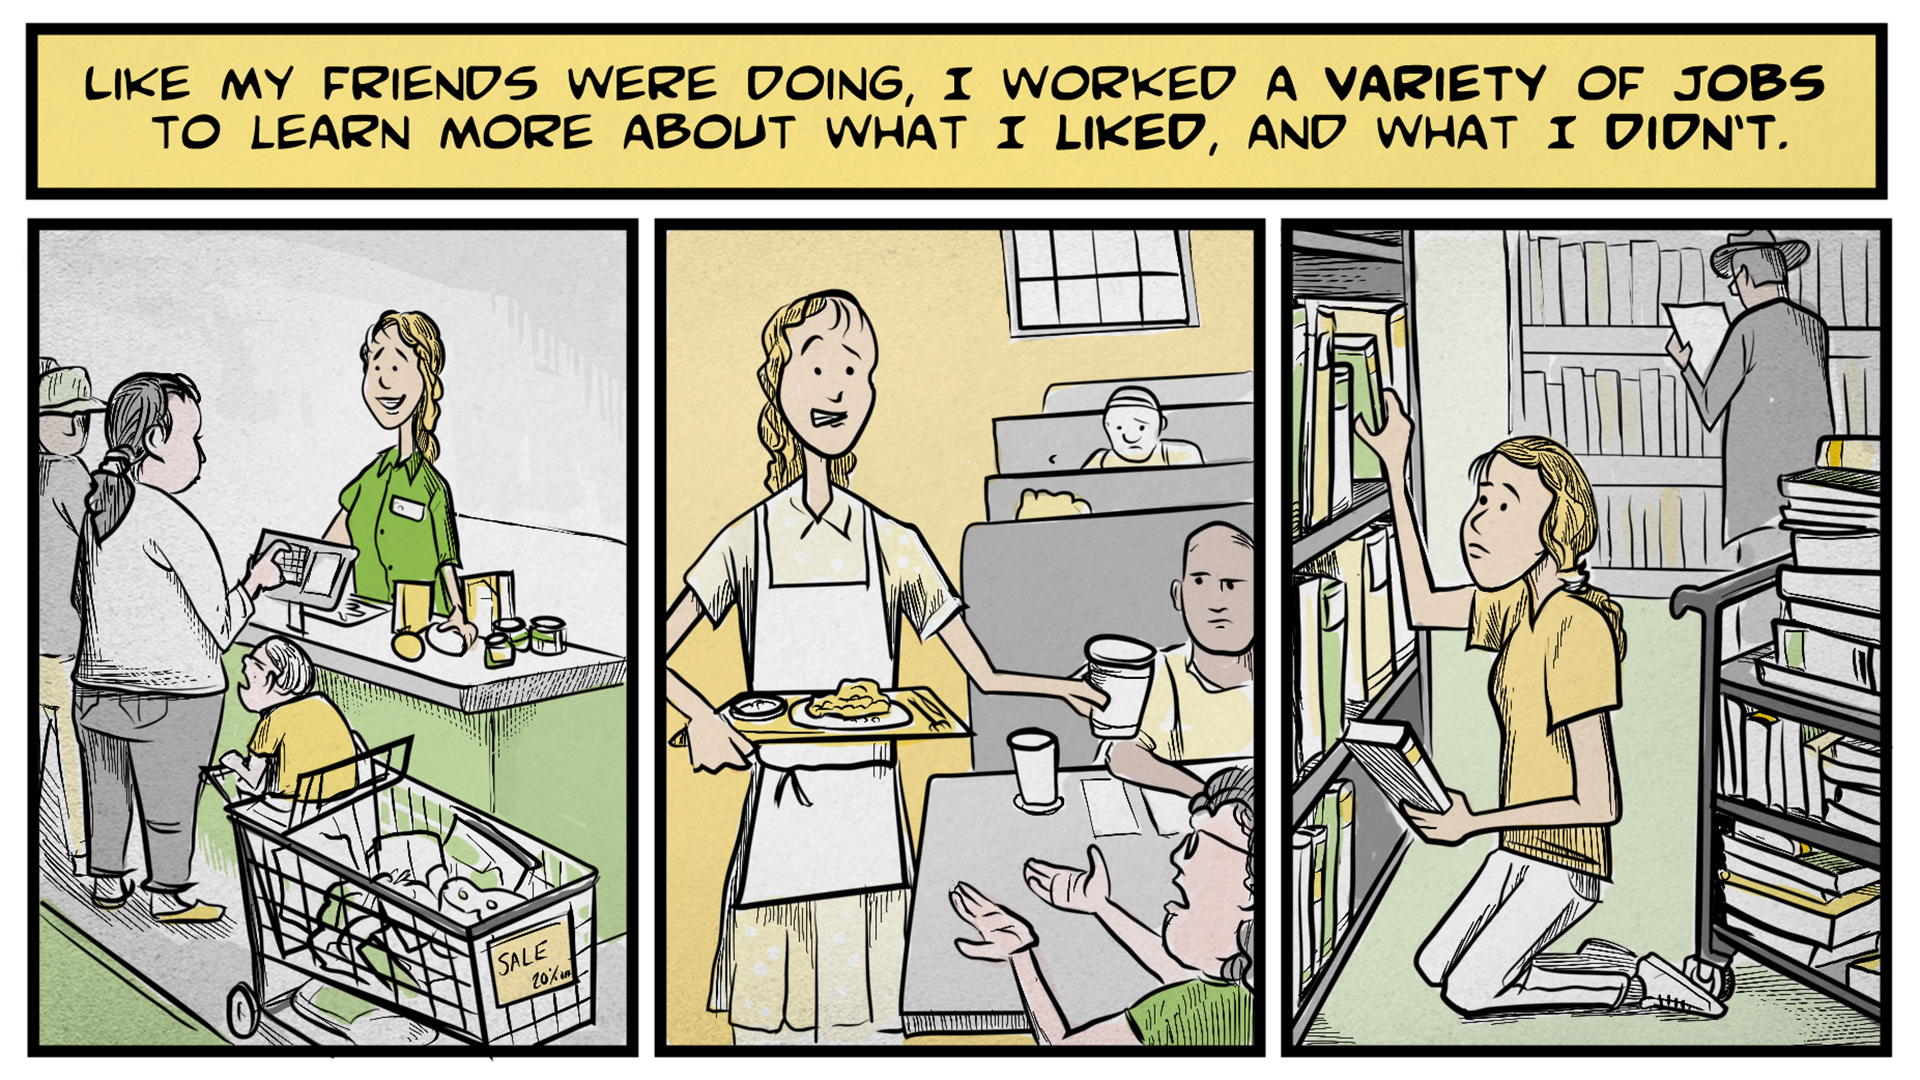 "Sasha, the narrator, says, ""Like my friends were doing, I worked a variety of jobs to learn more about what I liked, and what I didn't."" The left frame shows Sasha as a young woman, working as a cashier in a store. The middle frame shows her as a waitress, bringing food and drinks to a complaining customer. The right frame shows her kneeling on the floor next to a bookshelf, re-shelving books from a library cart."